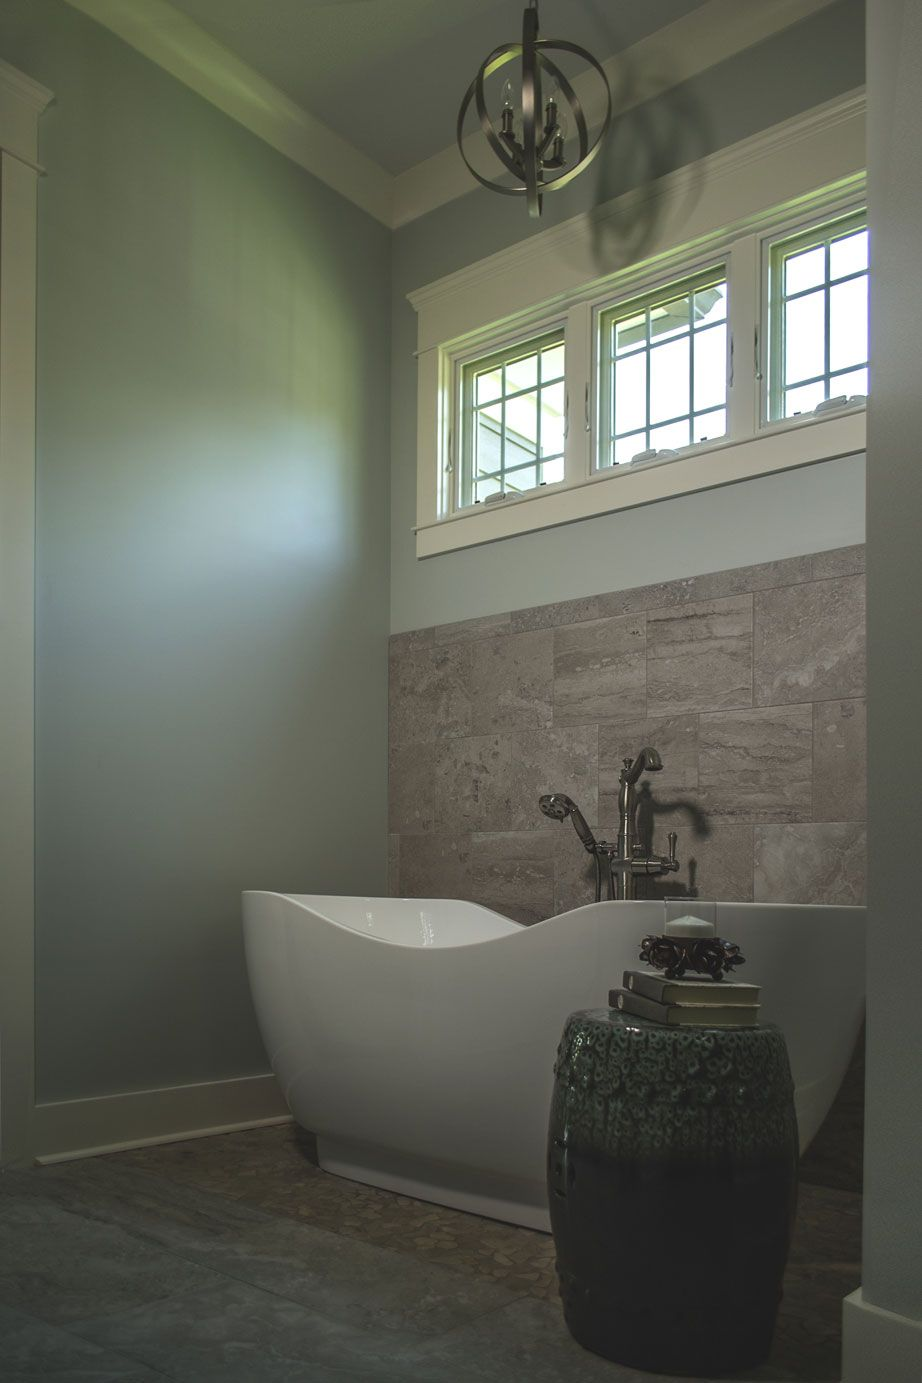 Master bath soaking tub with nickel chandelier. Robin's Nest Interiors - Louisville Interior Design & Home Accessories Boutique located in the heart of Middletown, KY.